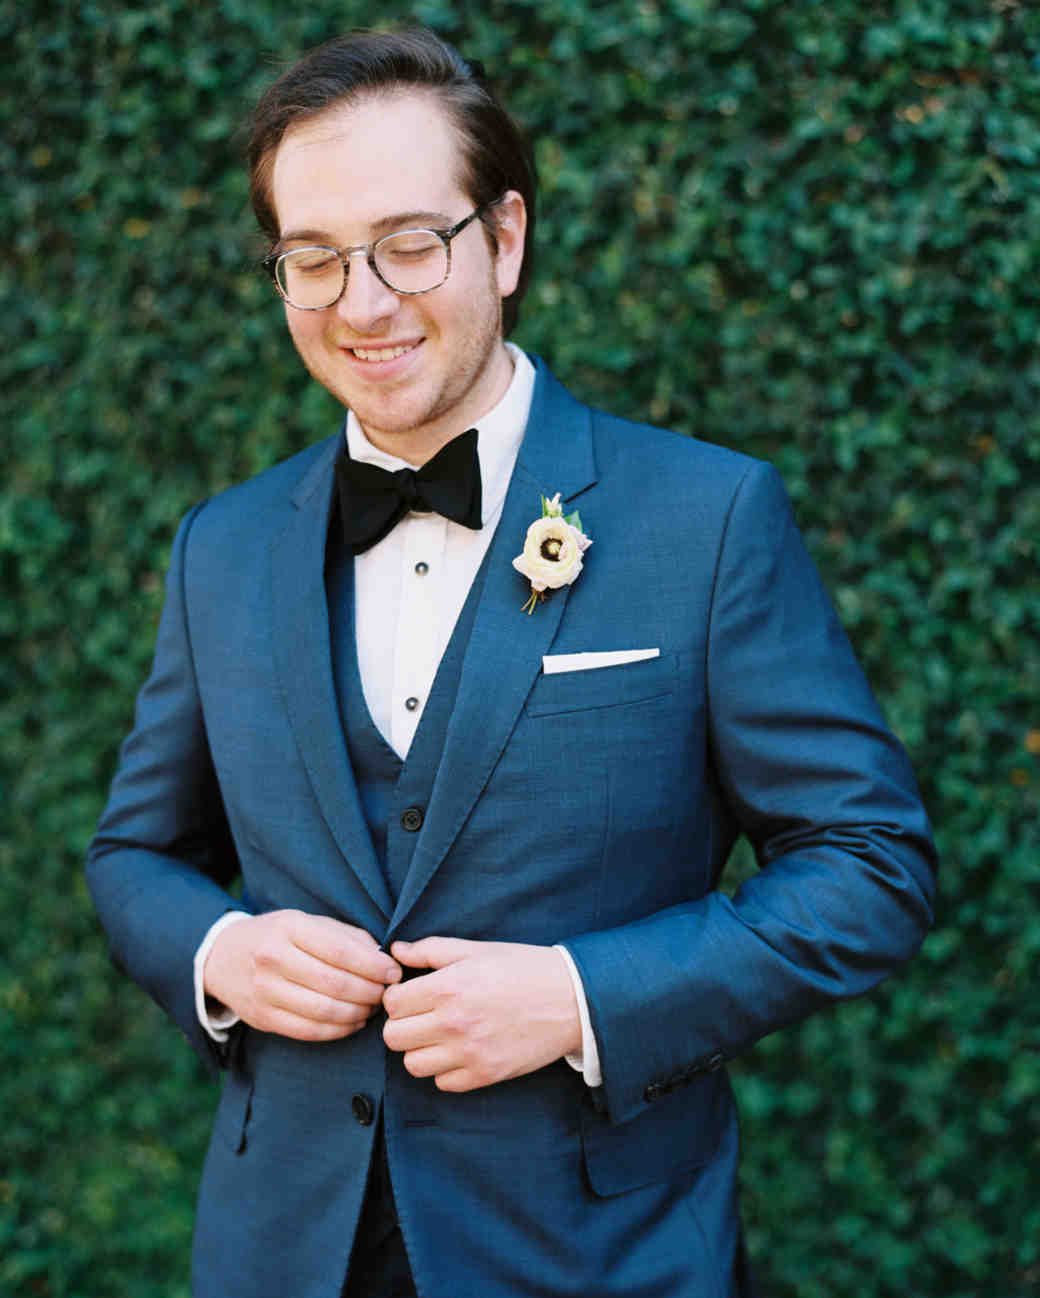 The Ultimate Getting-Ready Guide for the Groom | Martha Stewart Weddings